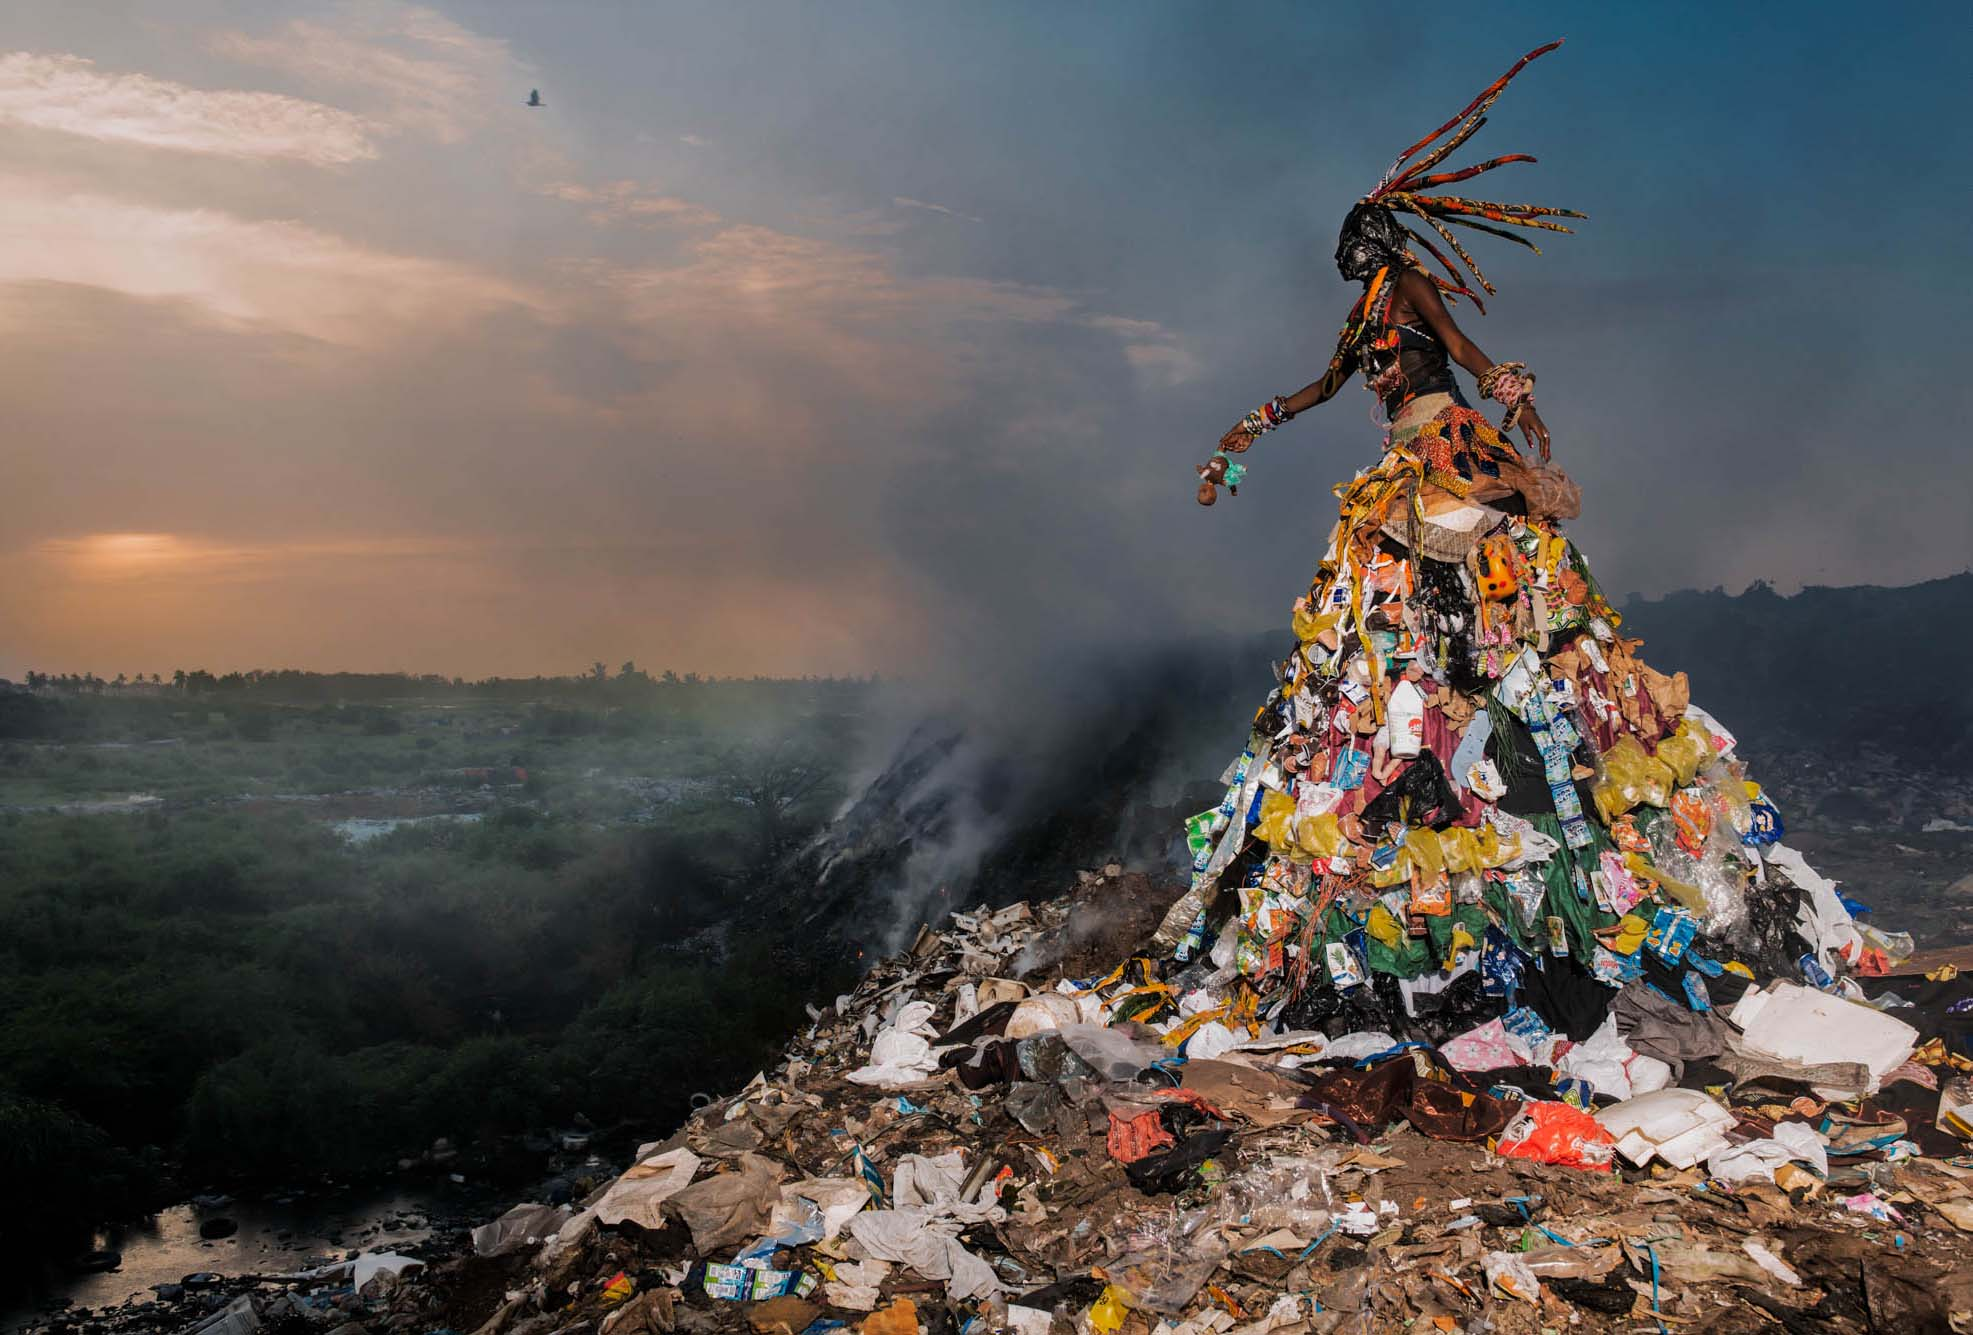 Fabrice Monteiro (Belgium, b. 1972) The Prophecy, Untitled #1, 2014. Digital photograph, 47 1/4 x 31 1/2 in. Museum purchase, Karl E. Weston Memorial Fund, M.2016.2